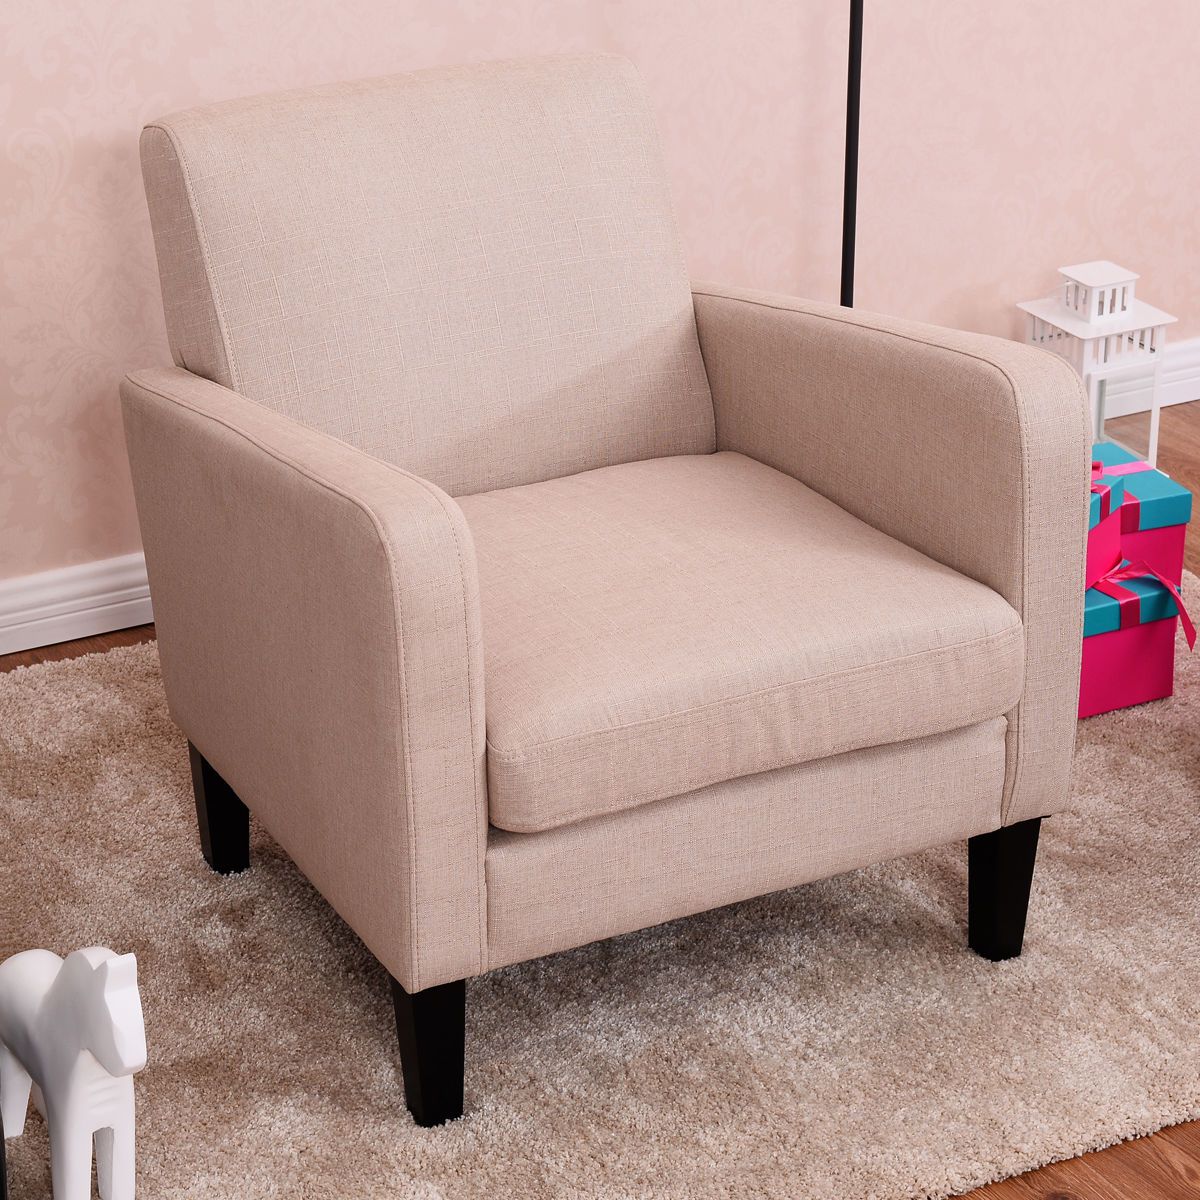 Giantex Leisure Arm Chair Accent Single Sofa Fabric Upholstered Living Room Modern Chairs Sofa Home Furniture HW53954BE european leisure tables and chairs fashion leisure sofa chair small coffee table beauty salon to discuss the single chair 3pcs